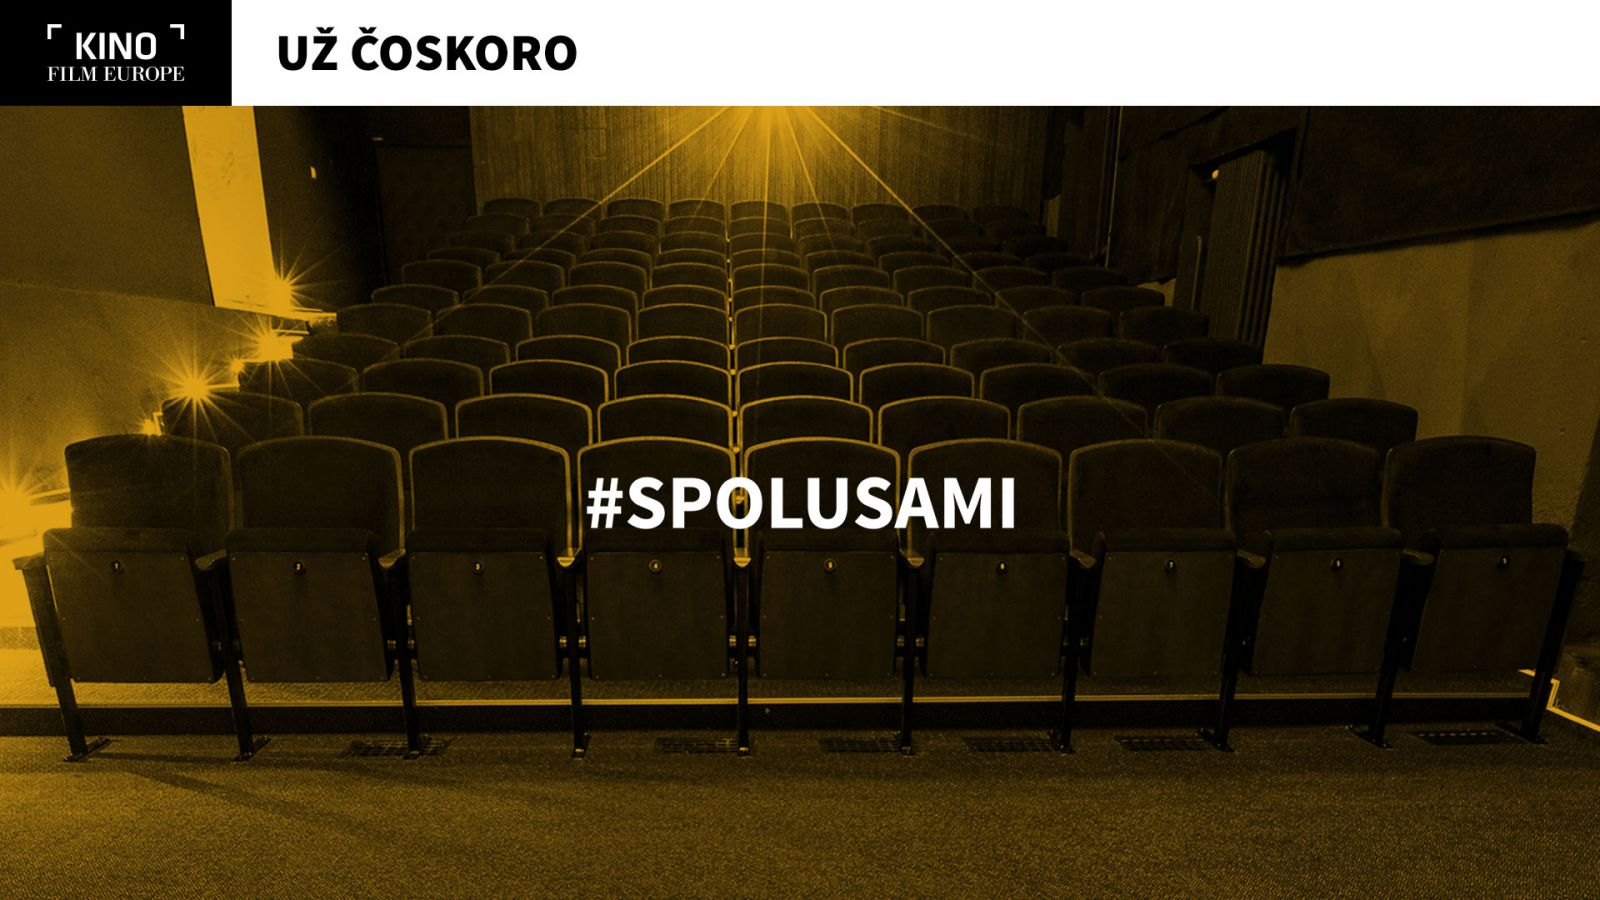 #spolusami v Kine Film Europe